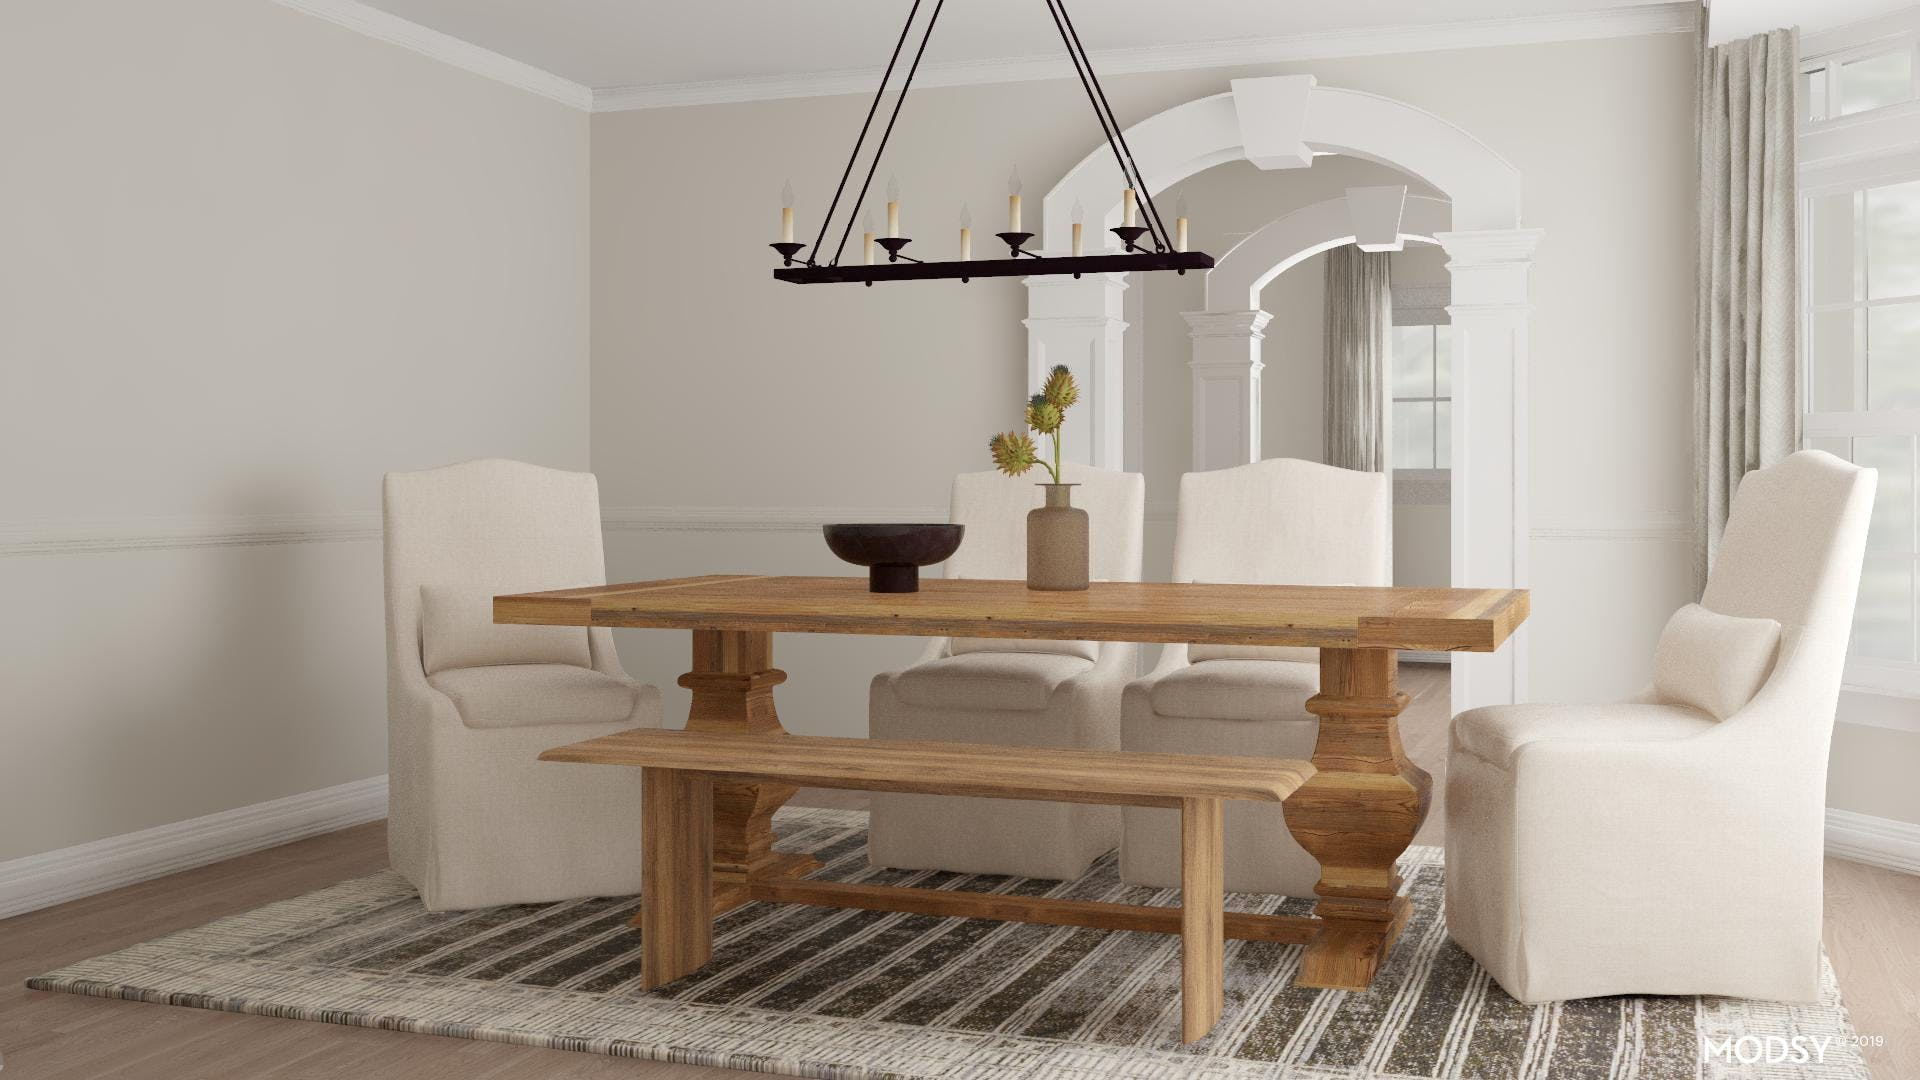 Rustic Dining Seating Options